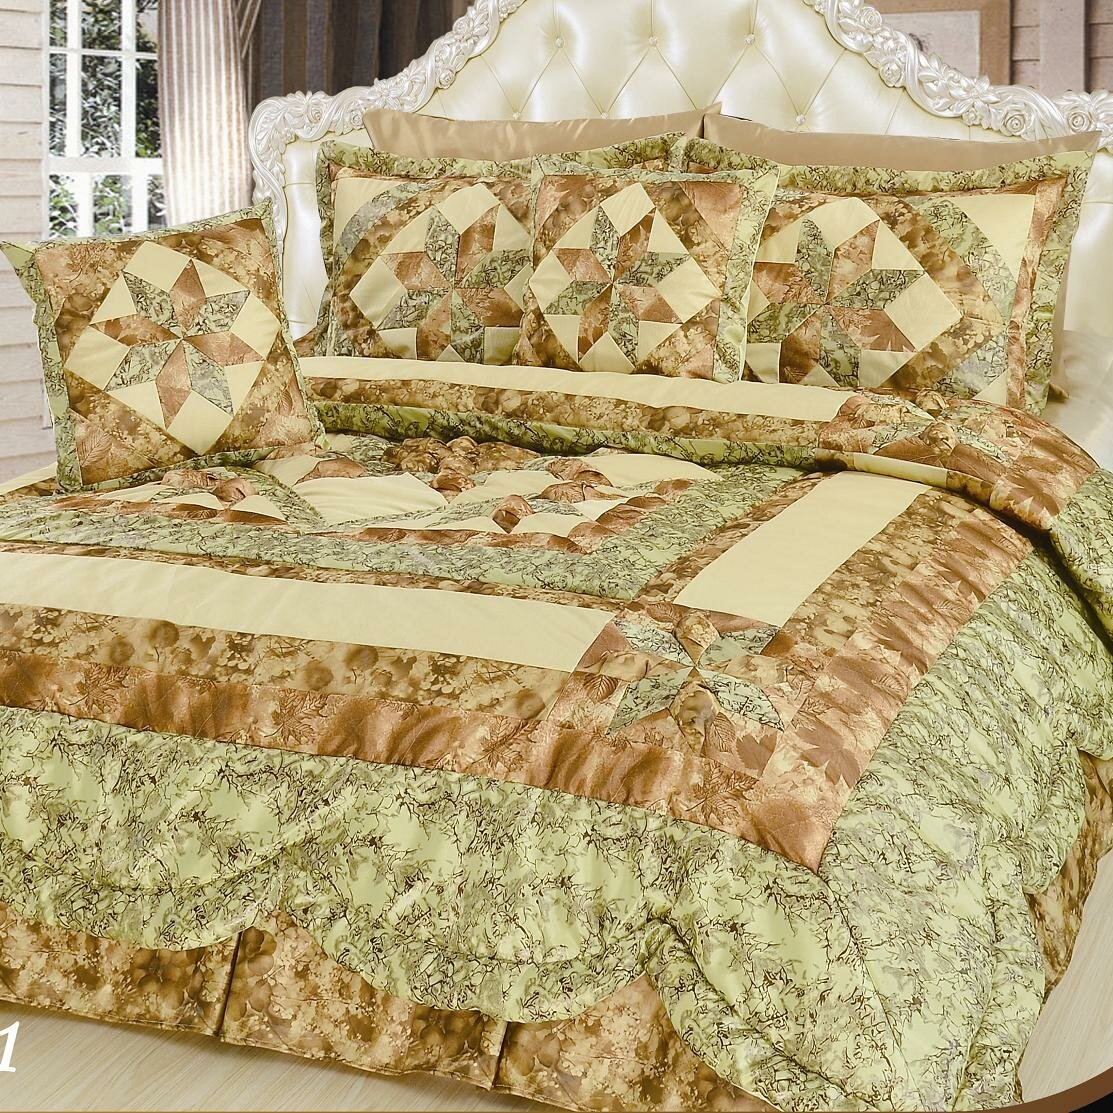 Dada Bedding Runway 5 Piece Queen Comforter Set Wayfair